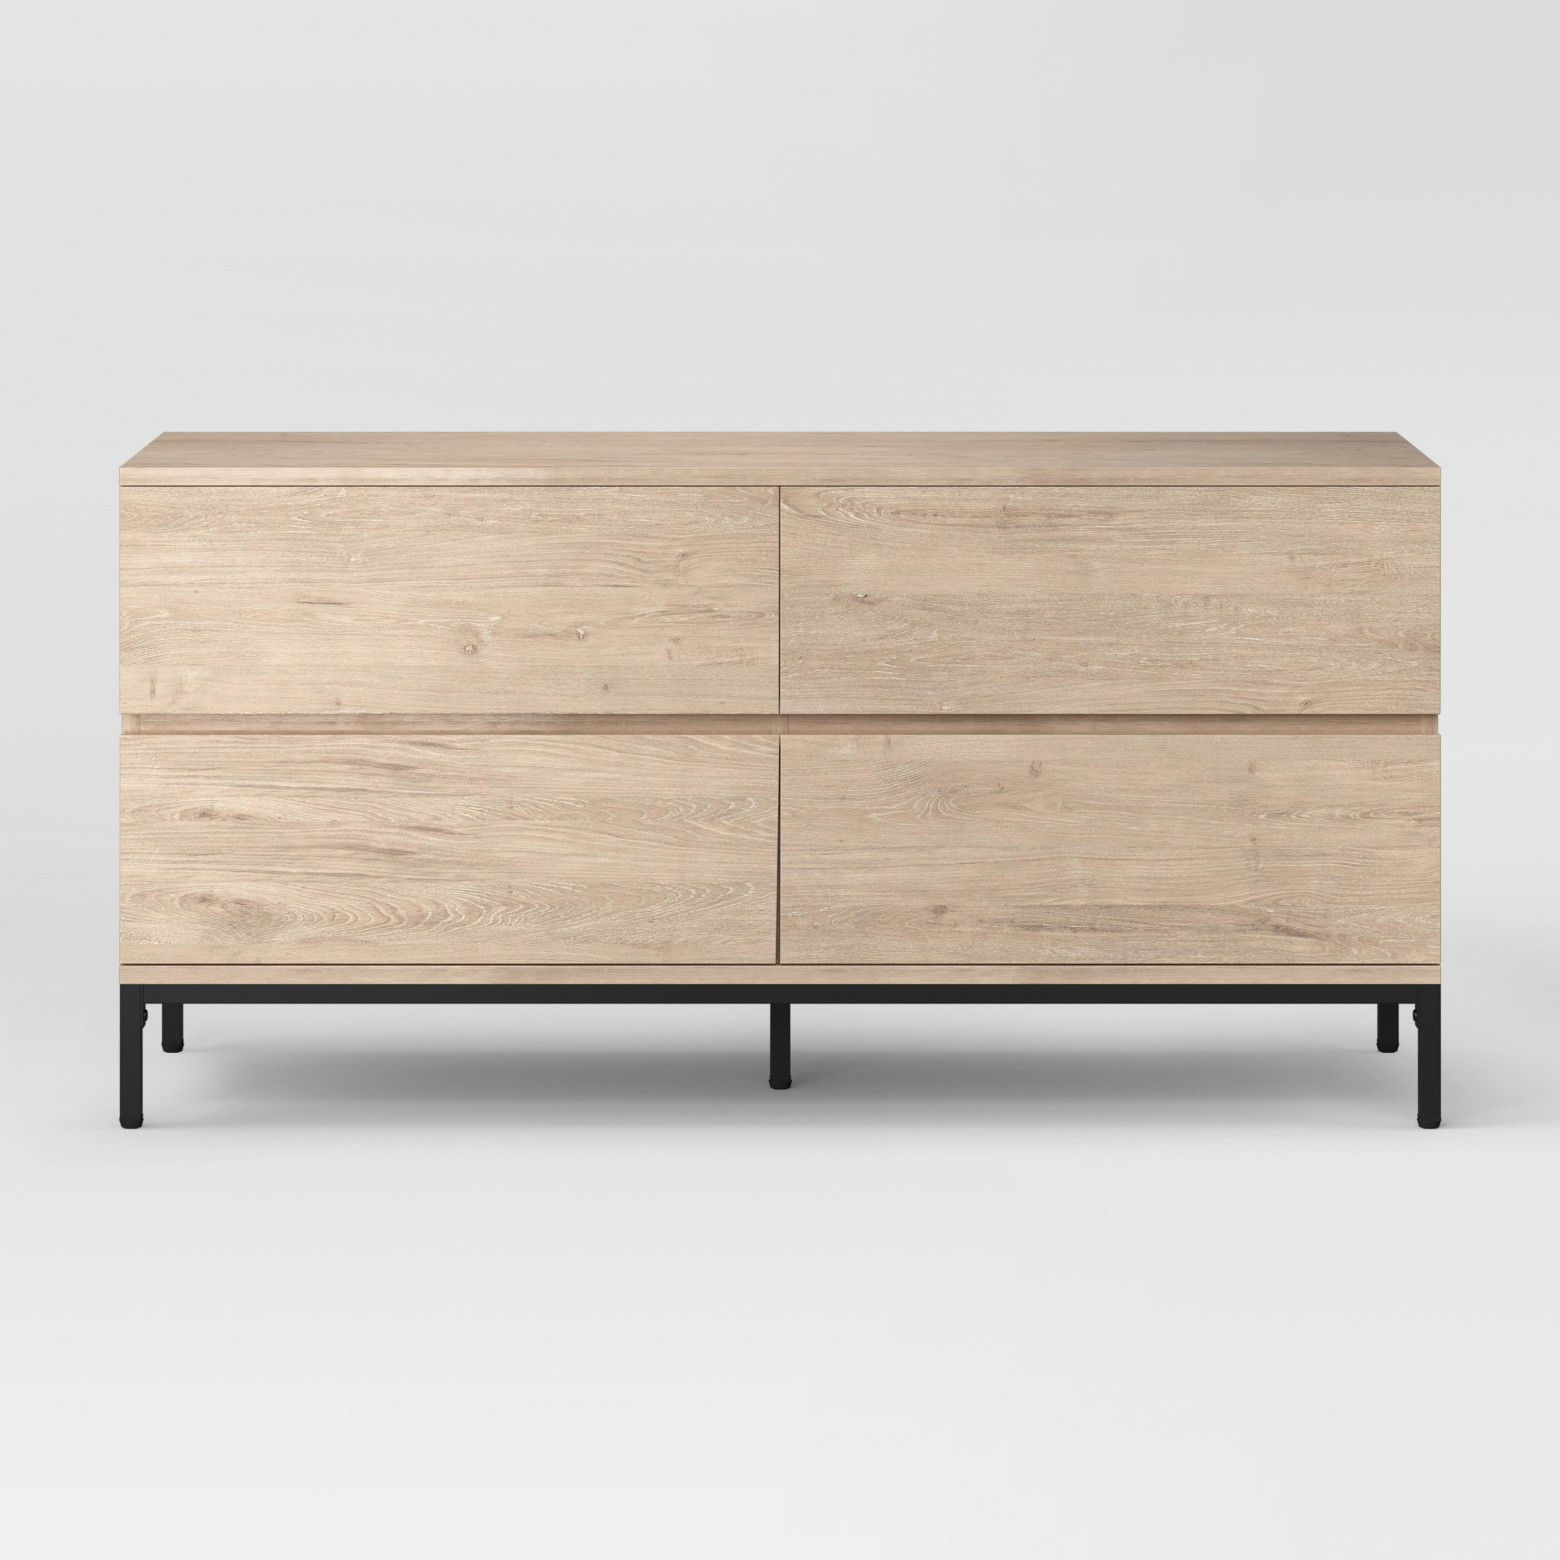 Keep Your Bedroom Organized In Chic Style With The Loring Four Drawer Dresser From Project 62 153 This Large 4 Drawer Dresser Dresser Drawers Walnut Dresser